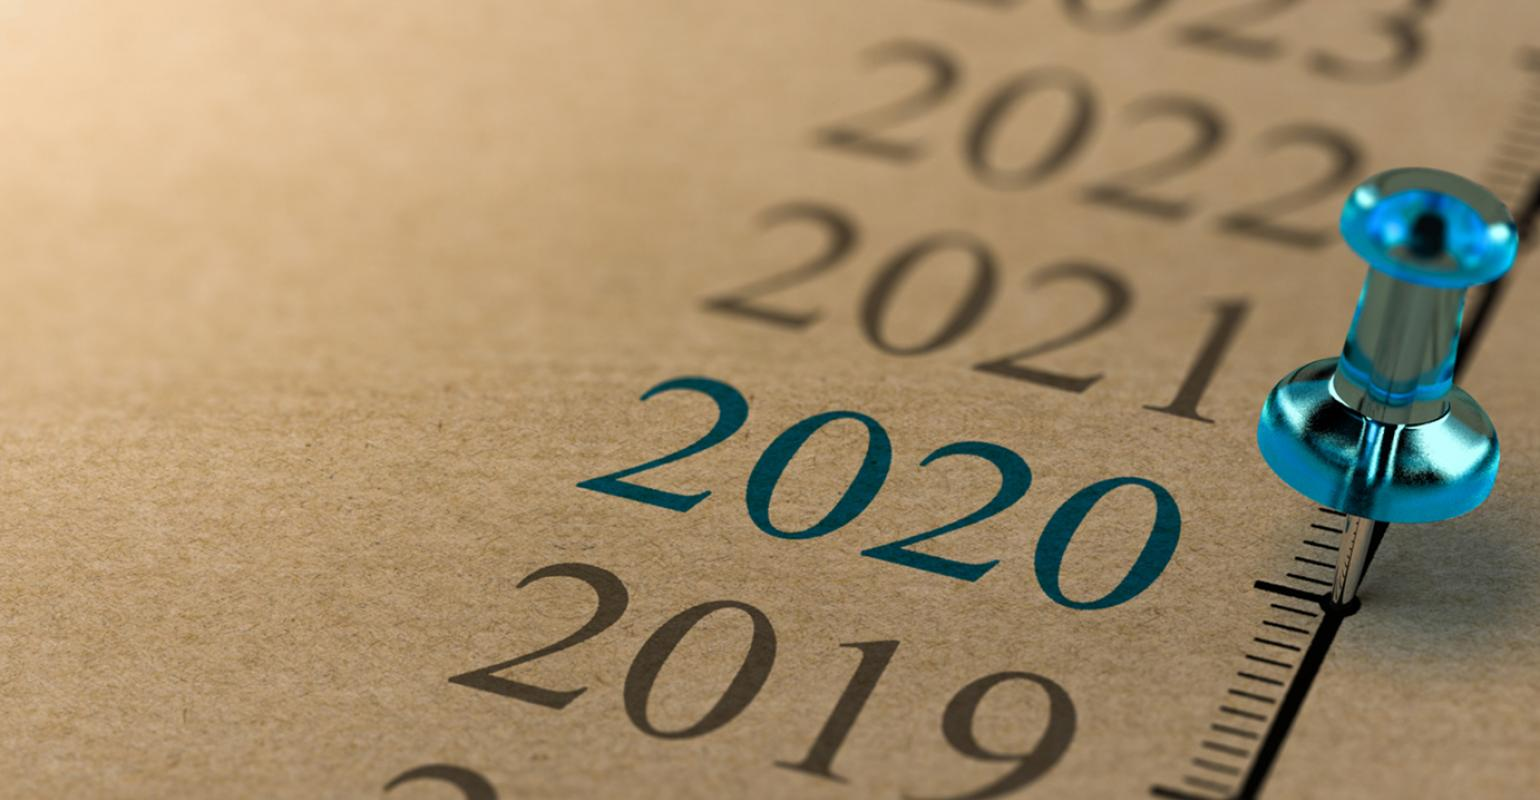 Events For 2020.Special Events Releases 2020 Event Planner Forecast